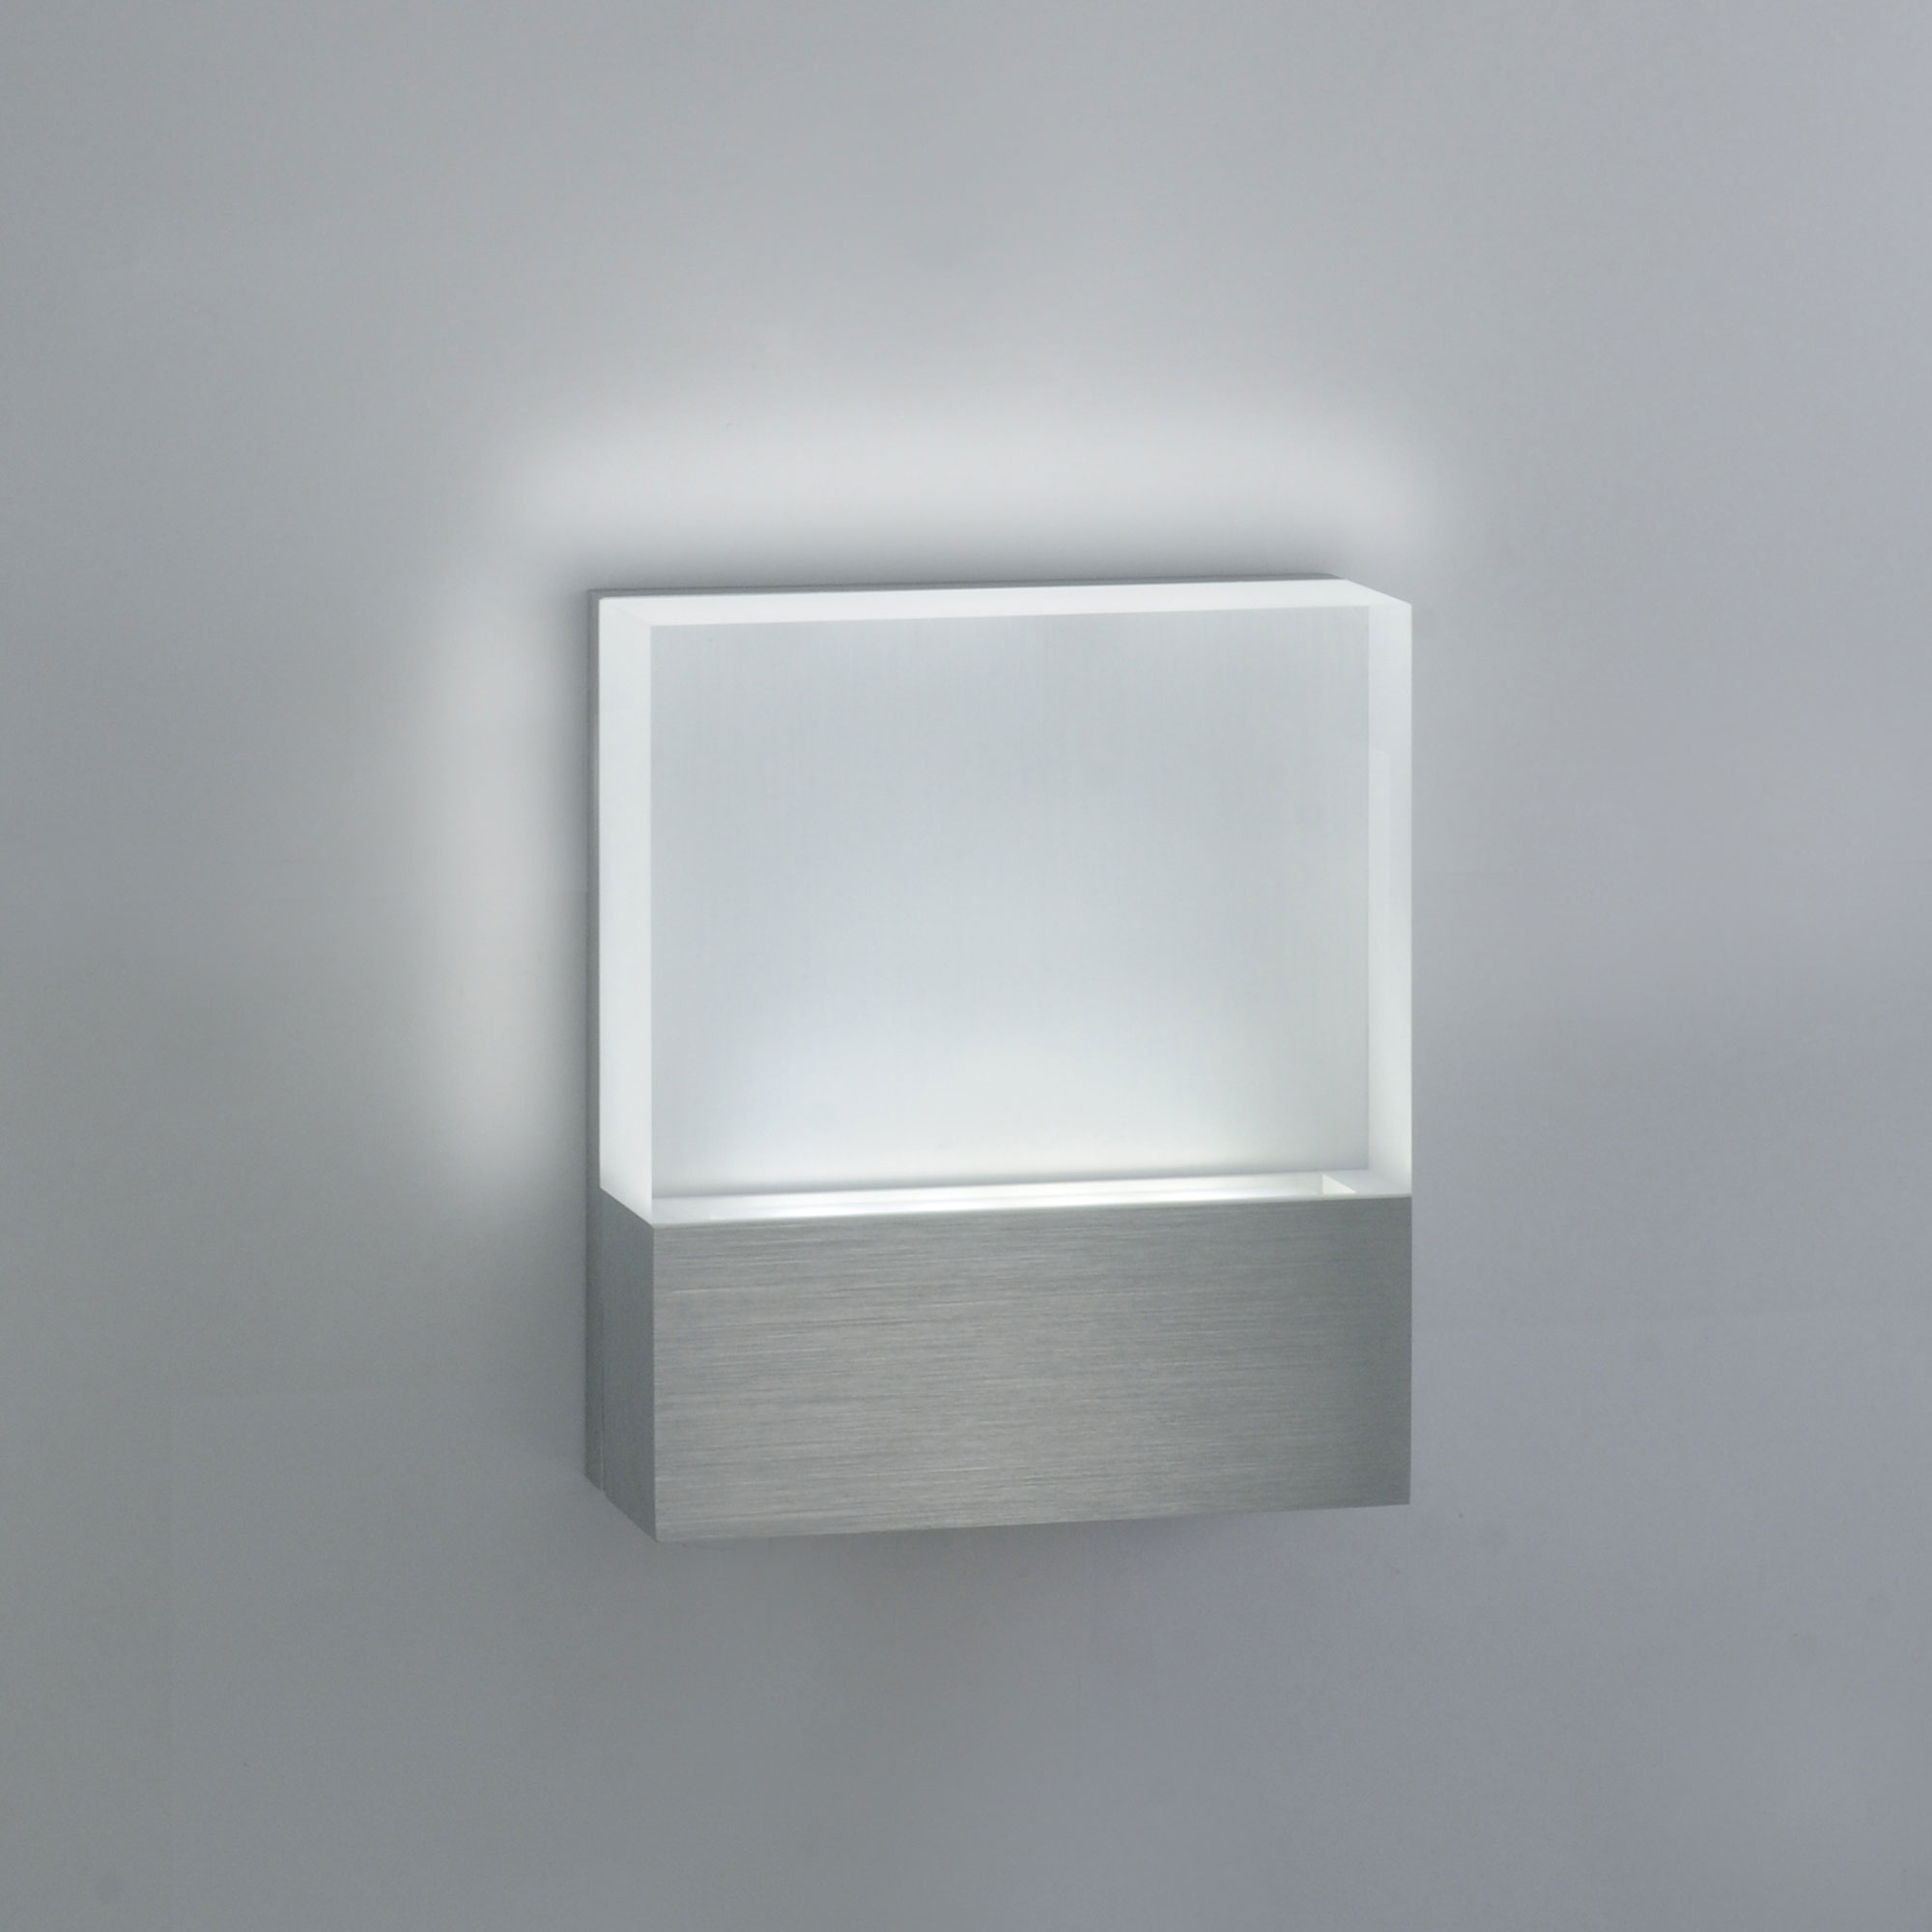 Wall Sconces Led Lighting : TV LED ELV Dimmable Wall Sconce by Edge Lighting TV-W-L1-ELV-SA